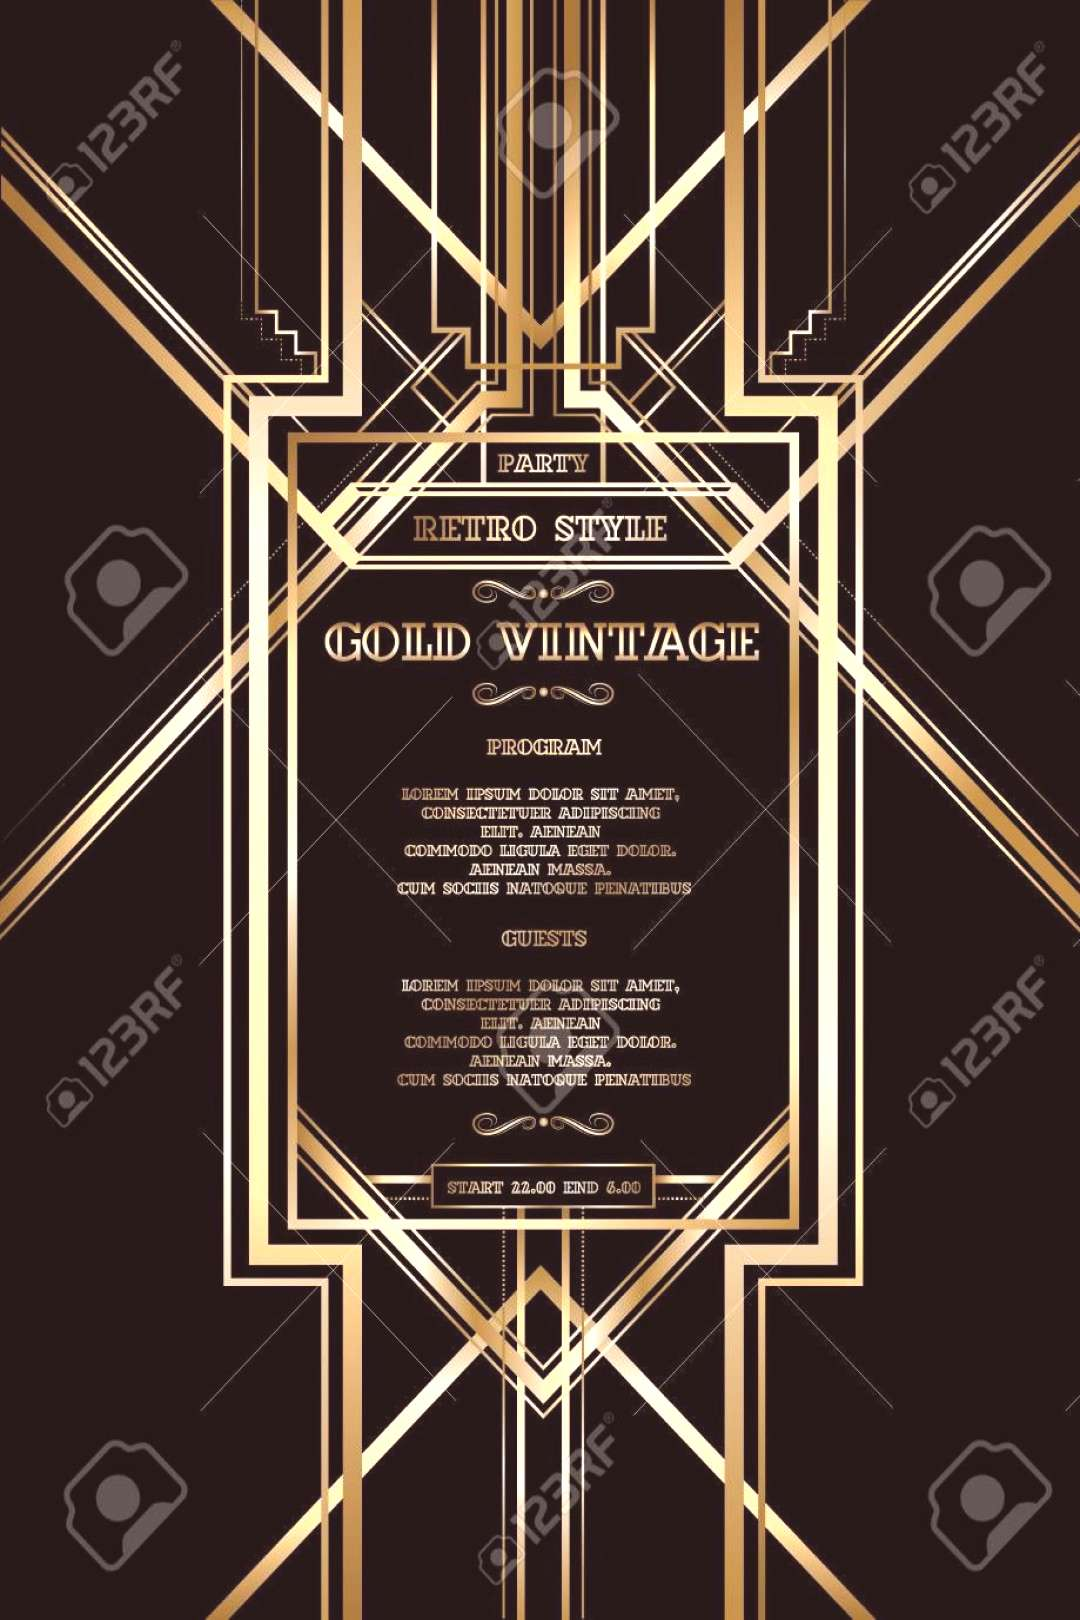 Retro pattern for vintage party Gatsby style. ,